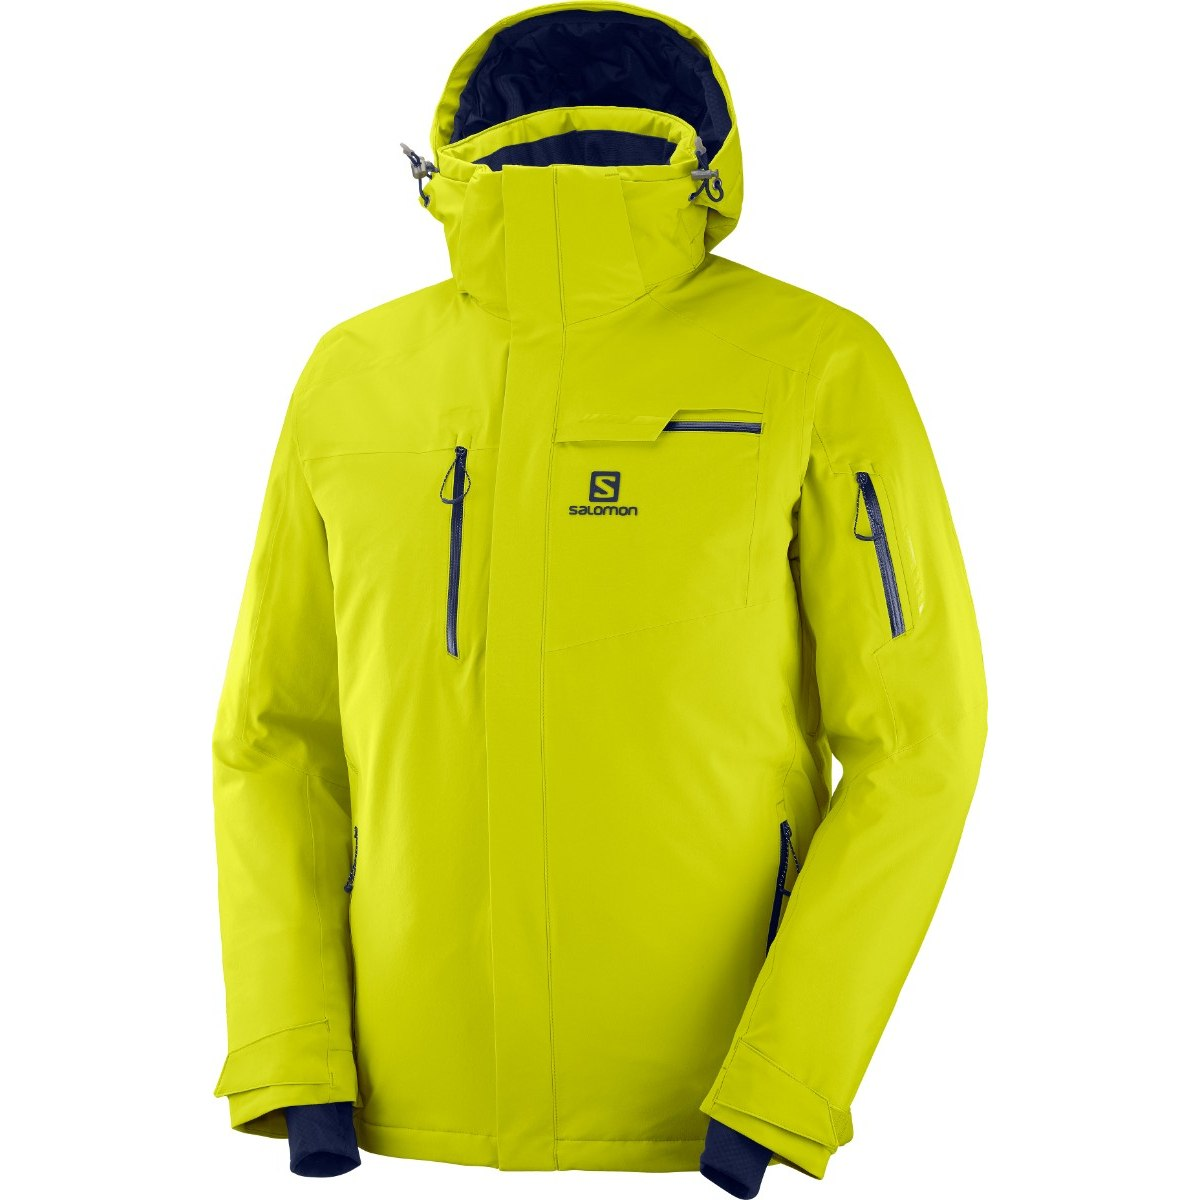 Salomon Geaca de ski Salomon BRILLIANT - Galben